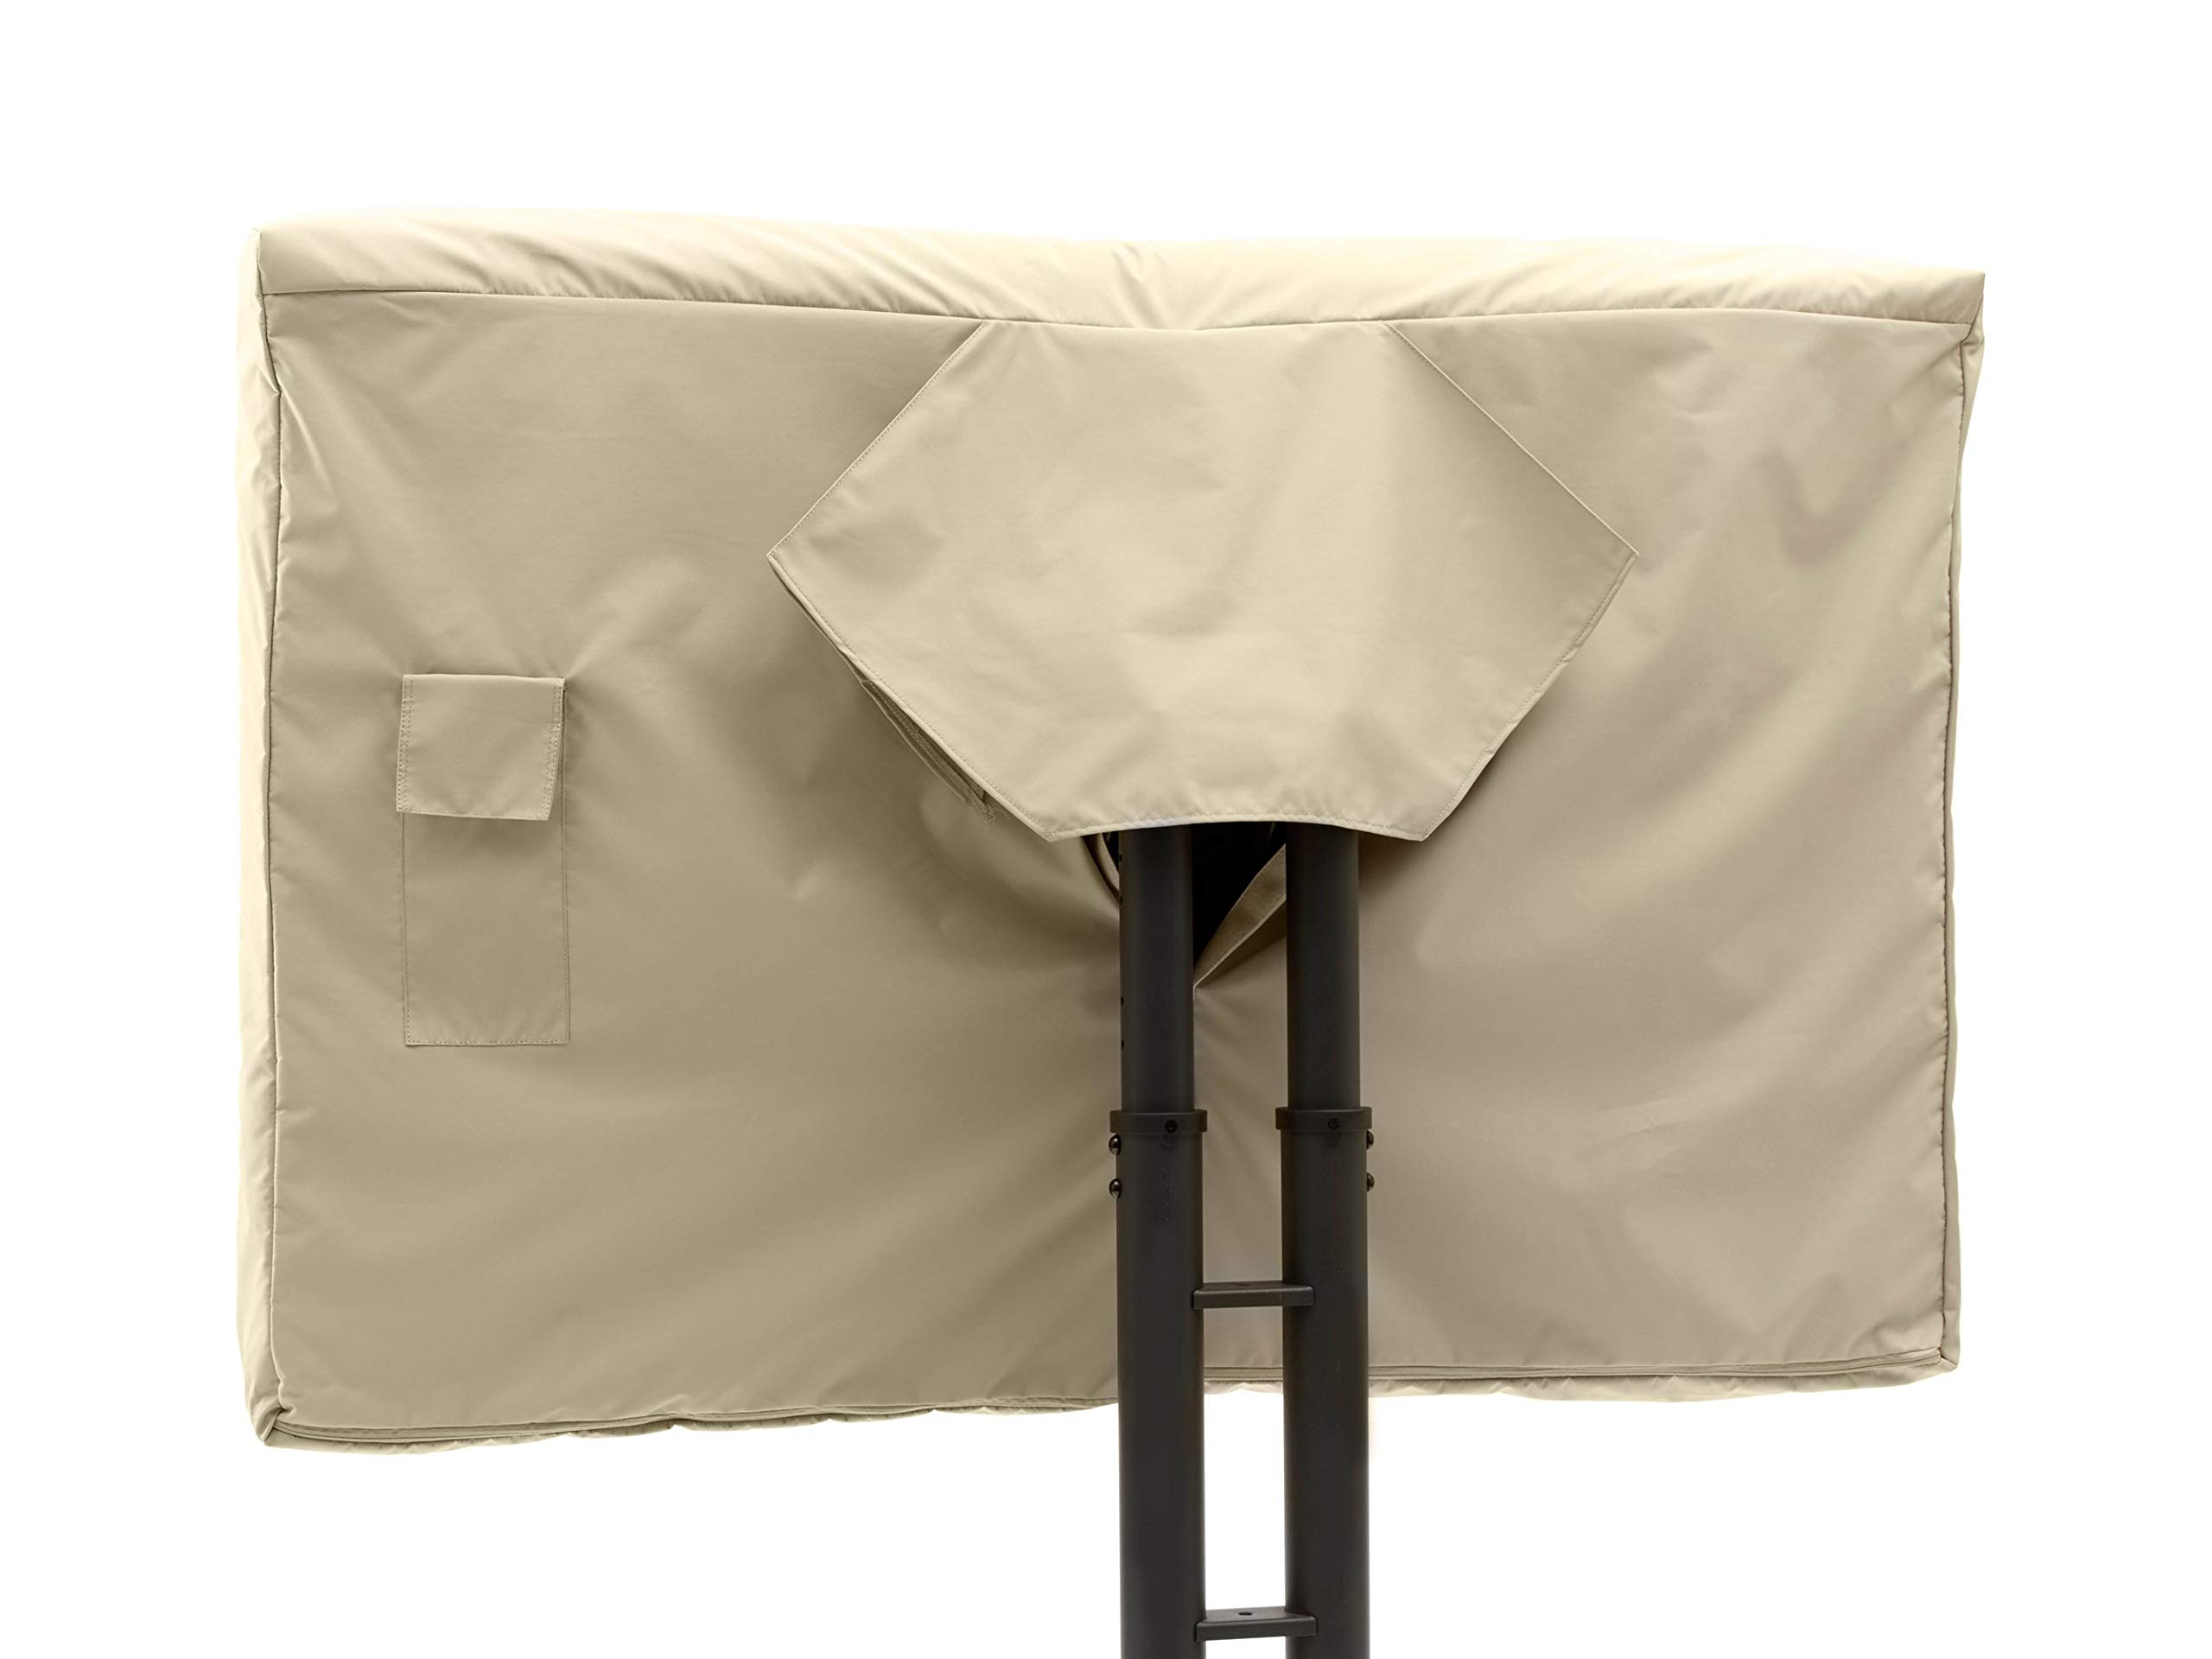 Covermates - Outdoor TV Cover - Fits 65 to 68 Inch TV's - Elite - 300 Denier Stock-Dyed Polyester - Full Coverage - Front Interior Fleece Lining - 3 YR Warranty - Water Resistant - Khaki